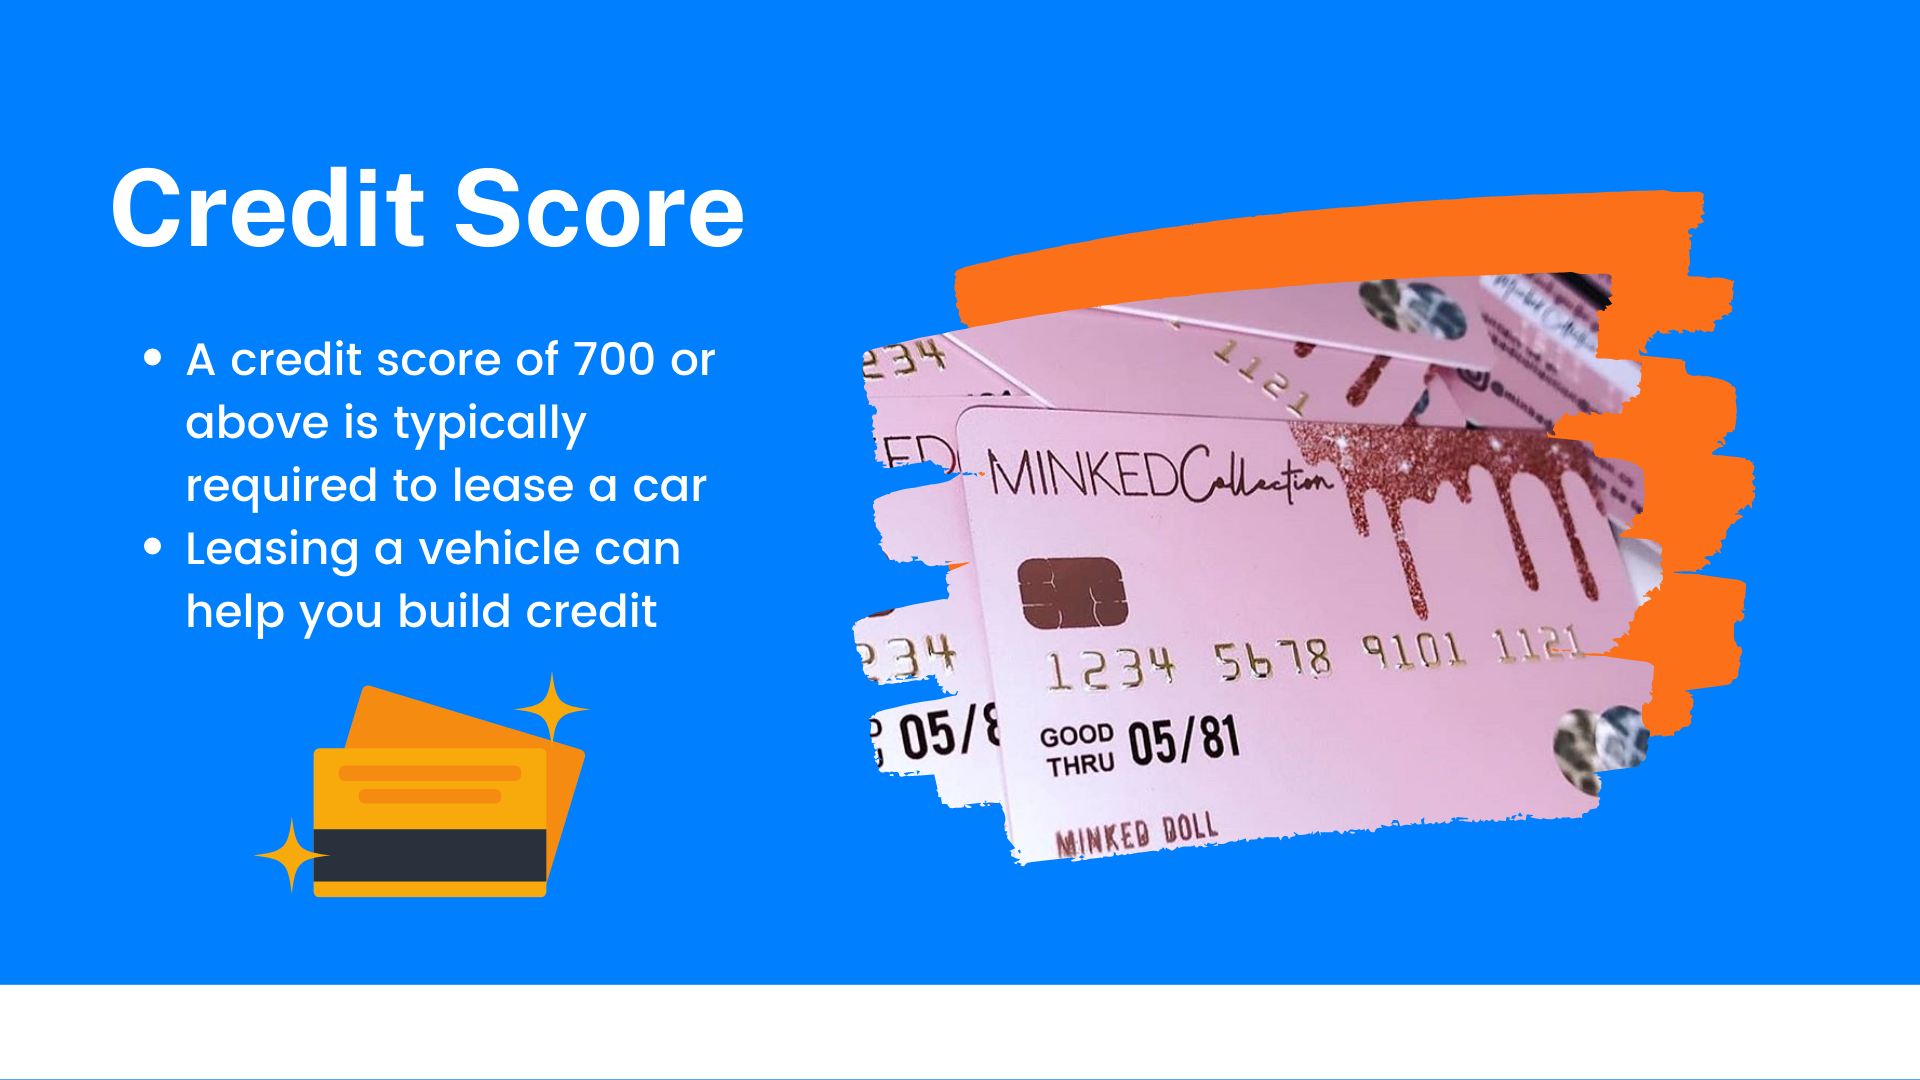 A credit score of 700 or above is typically required to lease a car. Leasing a vehicle can help you build credit.